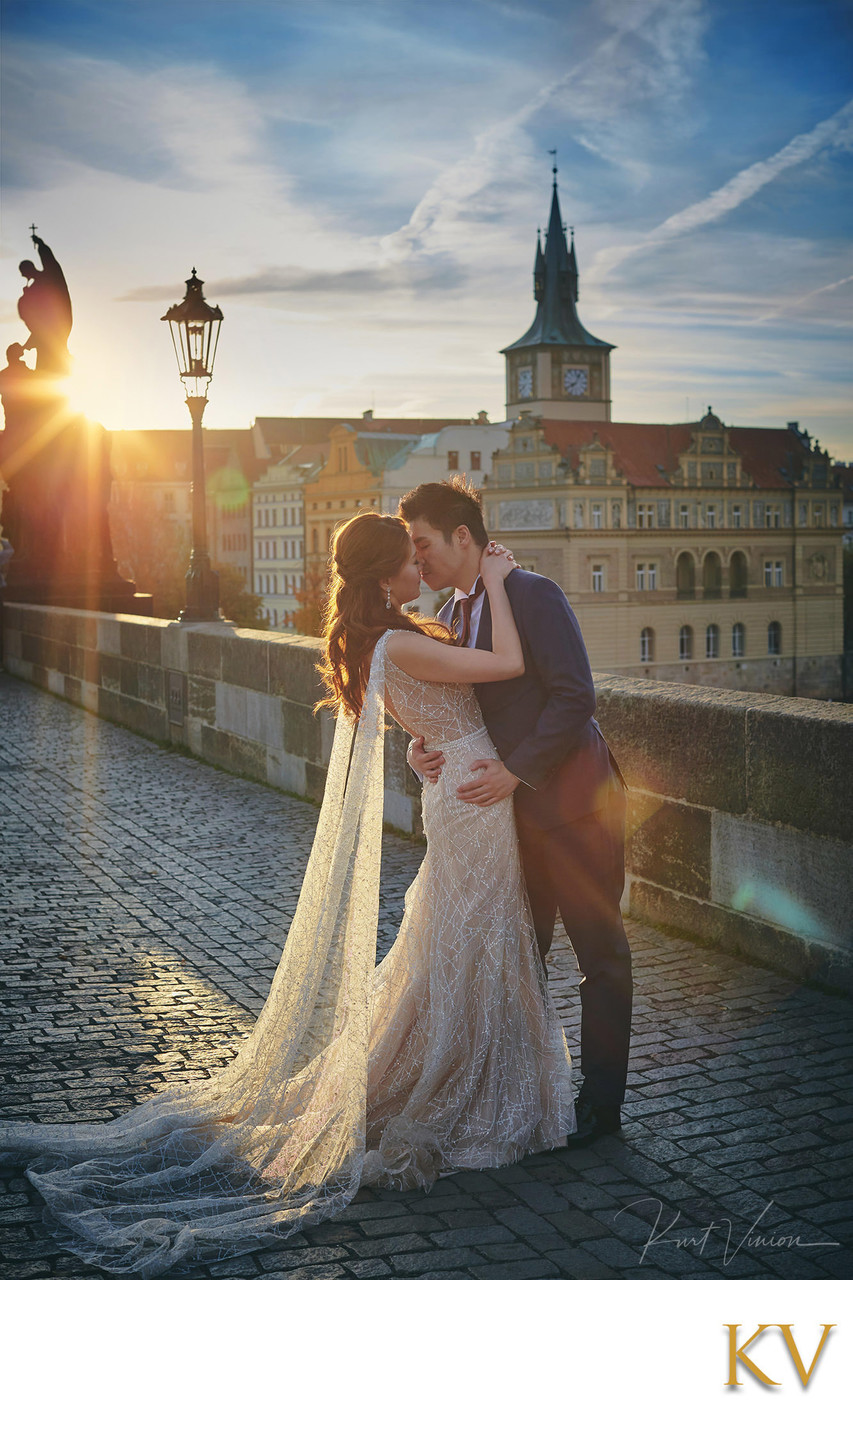 Gorgeous Hong Kong couple embracing at sunrise Prague